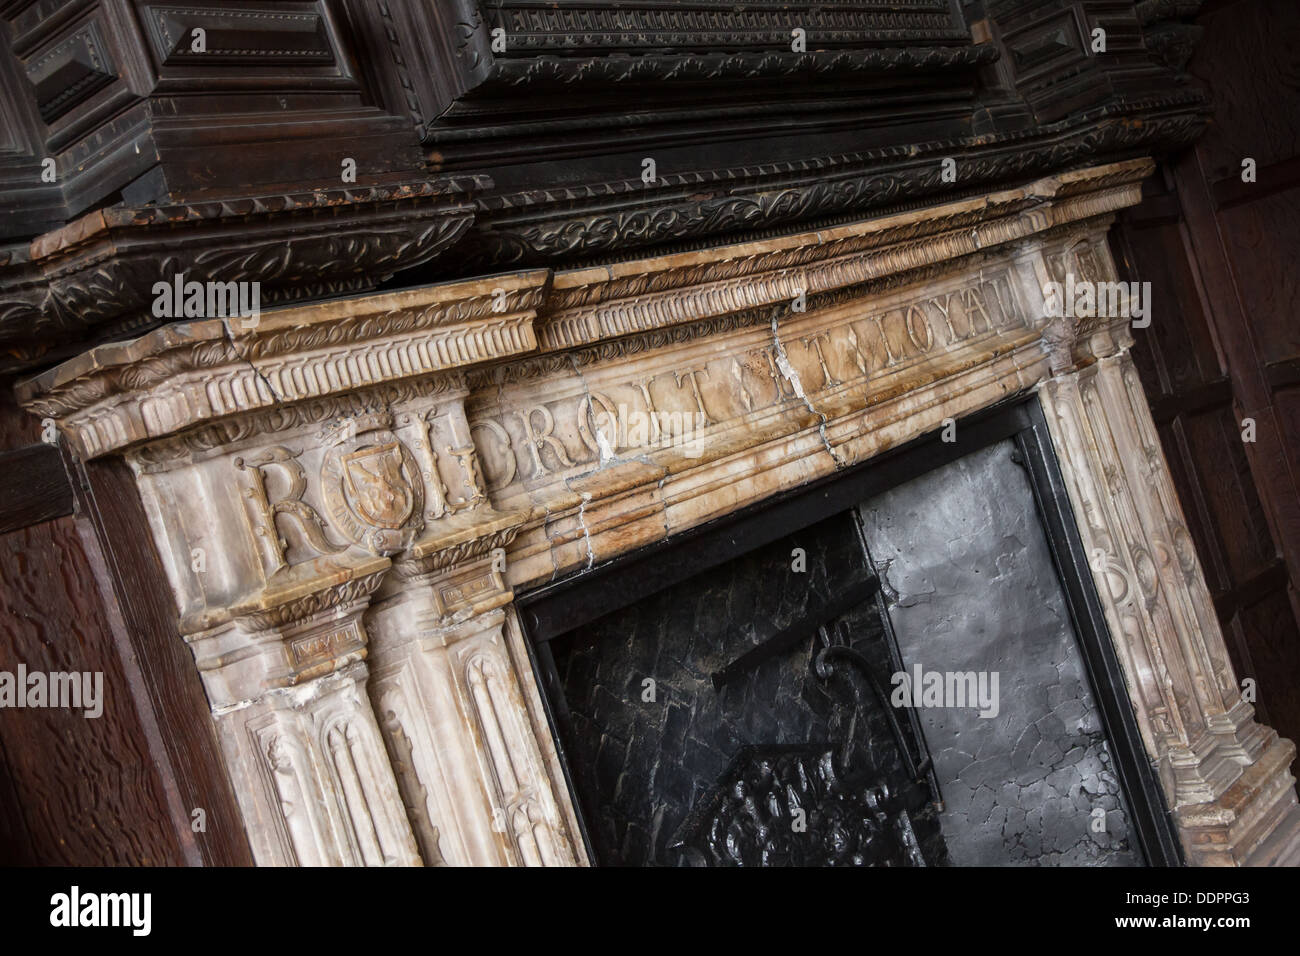 The grand Alabaster fireplace in the Oak Room in the Gatehouse at Kenilworth Castle - Stock Image